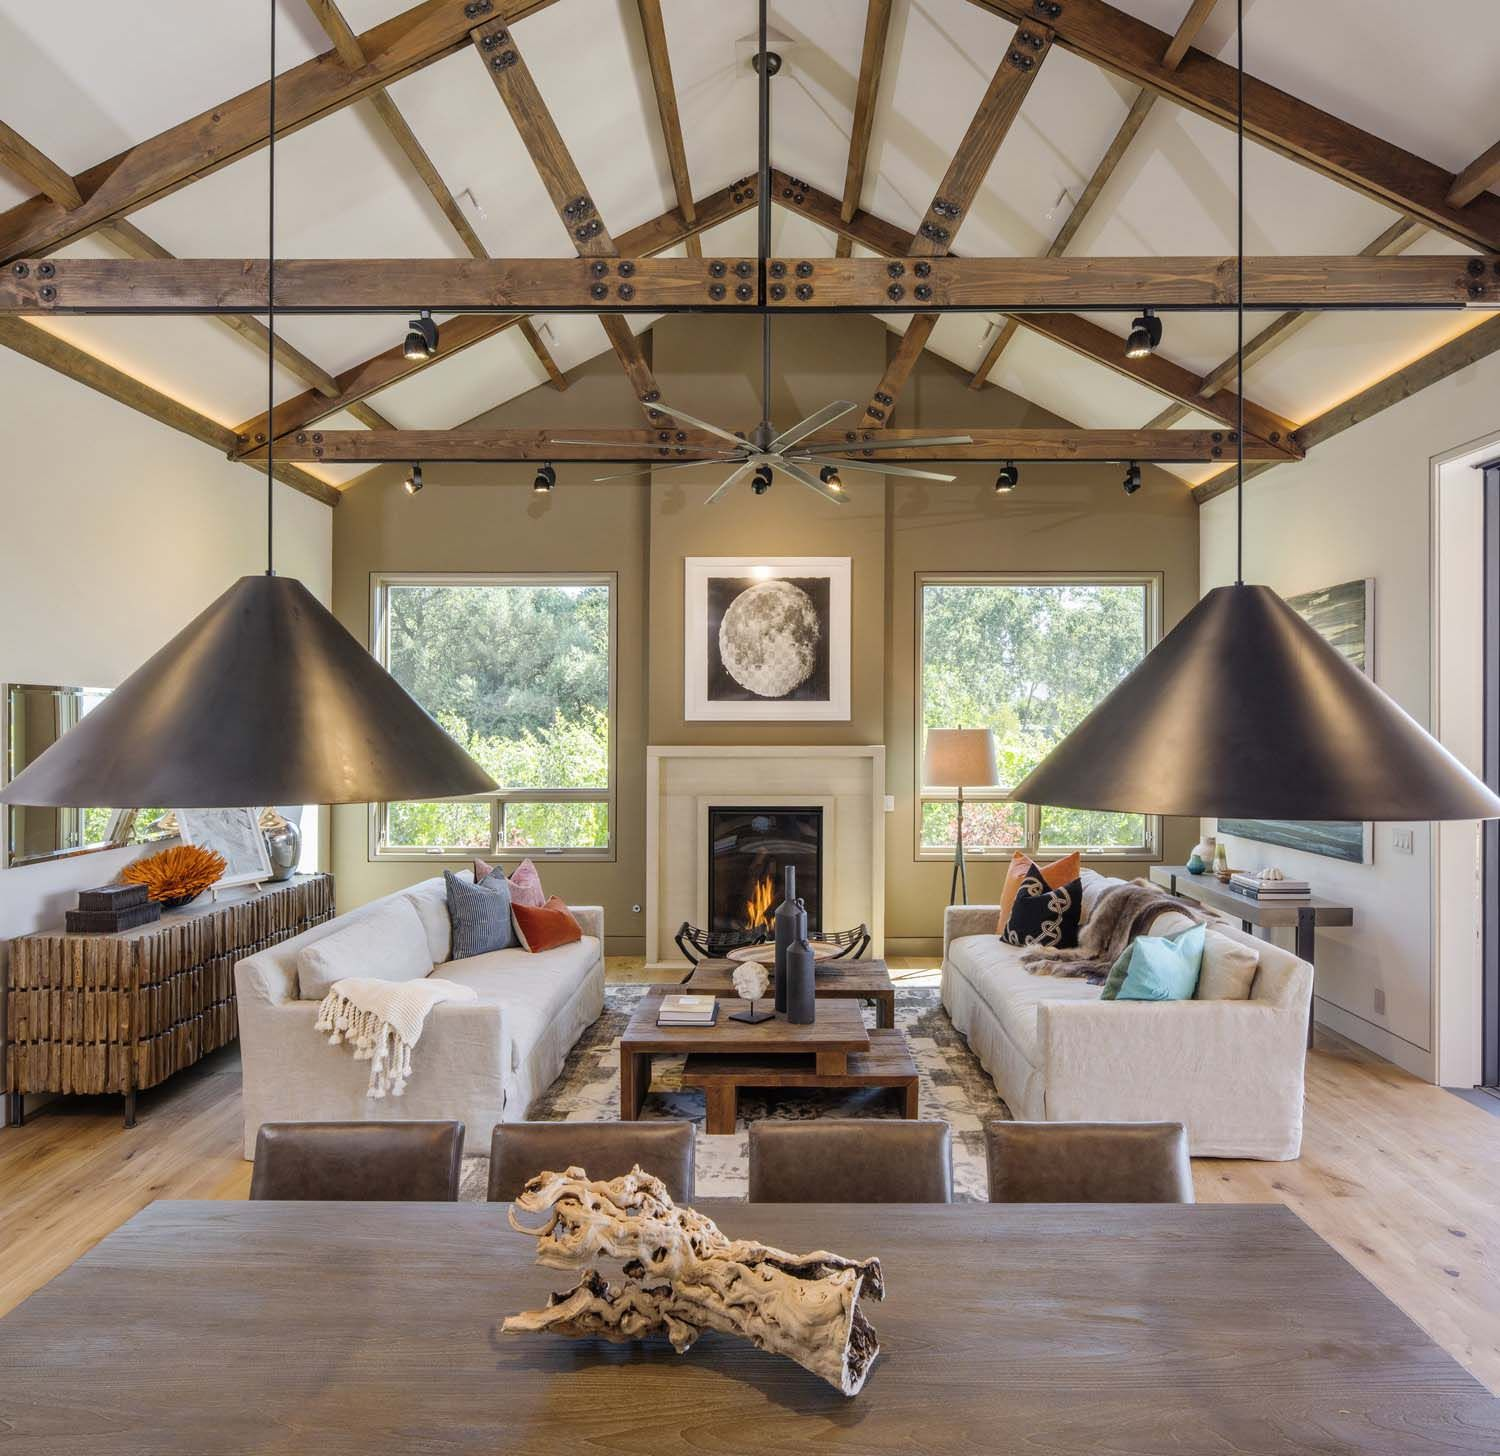 Napa Valley Home Decor: Dreamy Modern Farmhouse Style Invites Indoor-outdoor